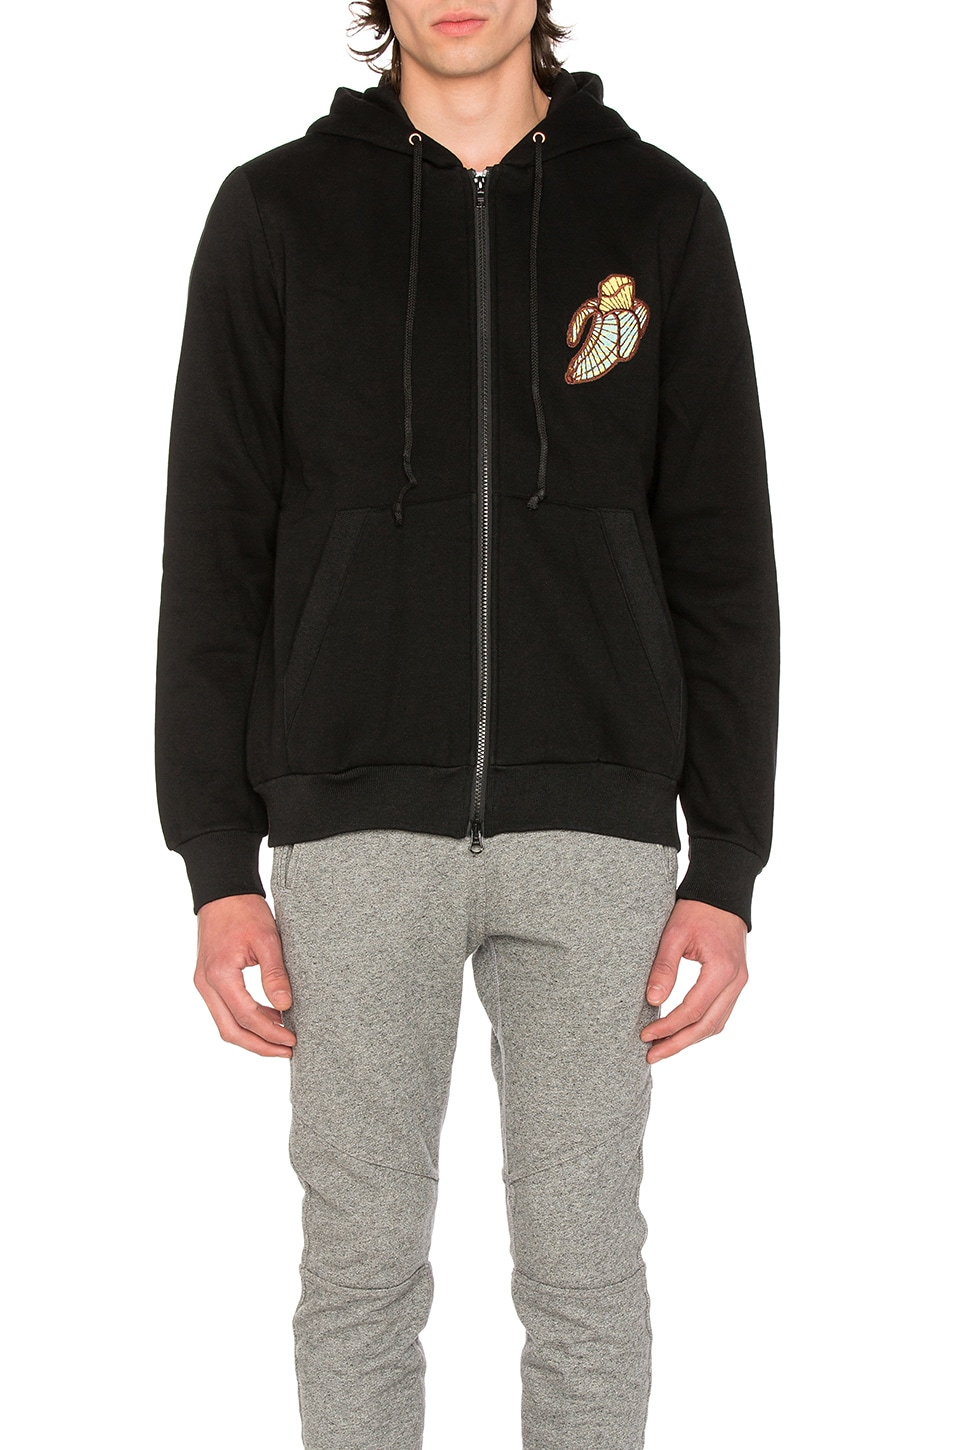 x Sk8thing Zip Up Hoodie by CLOT